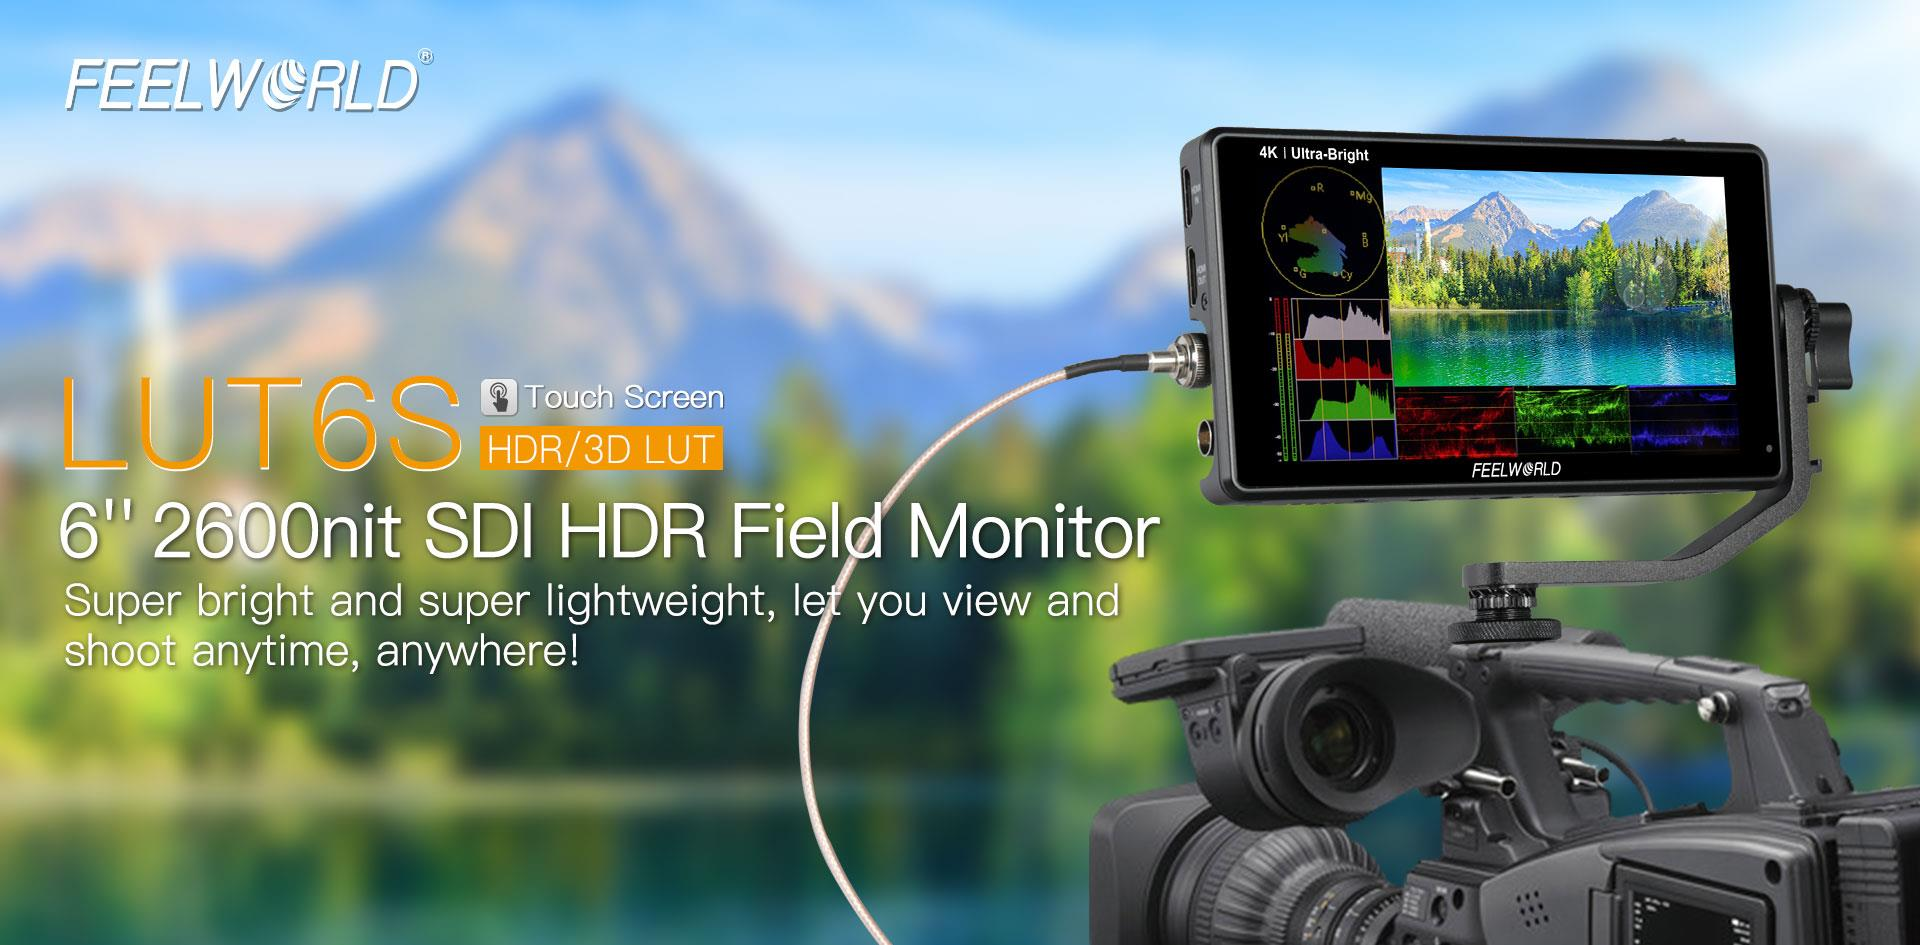 FeelWorld LUT6S 6 Inch HDR/3D LUT 2600nits 3G-SDI 4K HDMI Touch Screen On-Camera Monitor